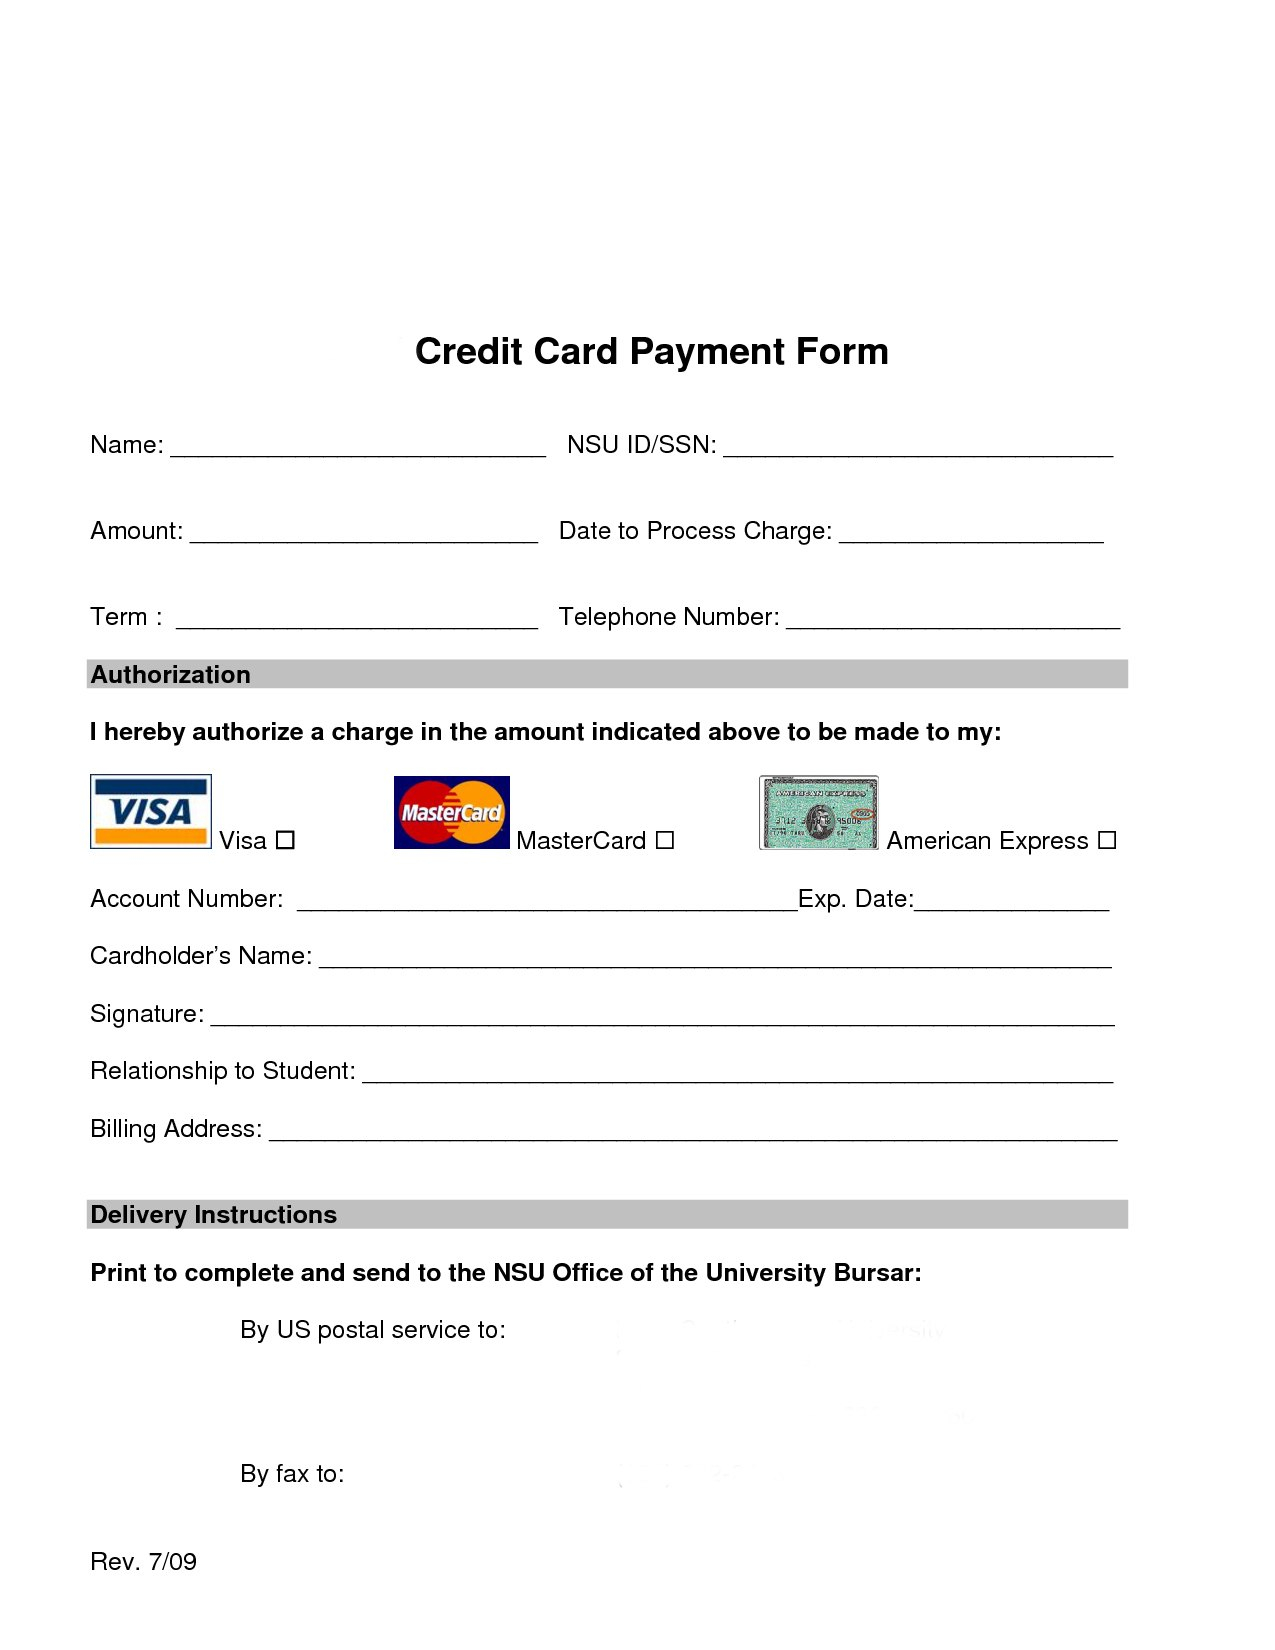 Credit Card Payment Form Template  Charlotte Clergy Coalition In Credit Card Payment Slip Template